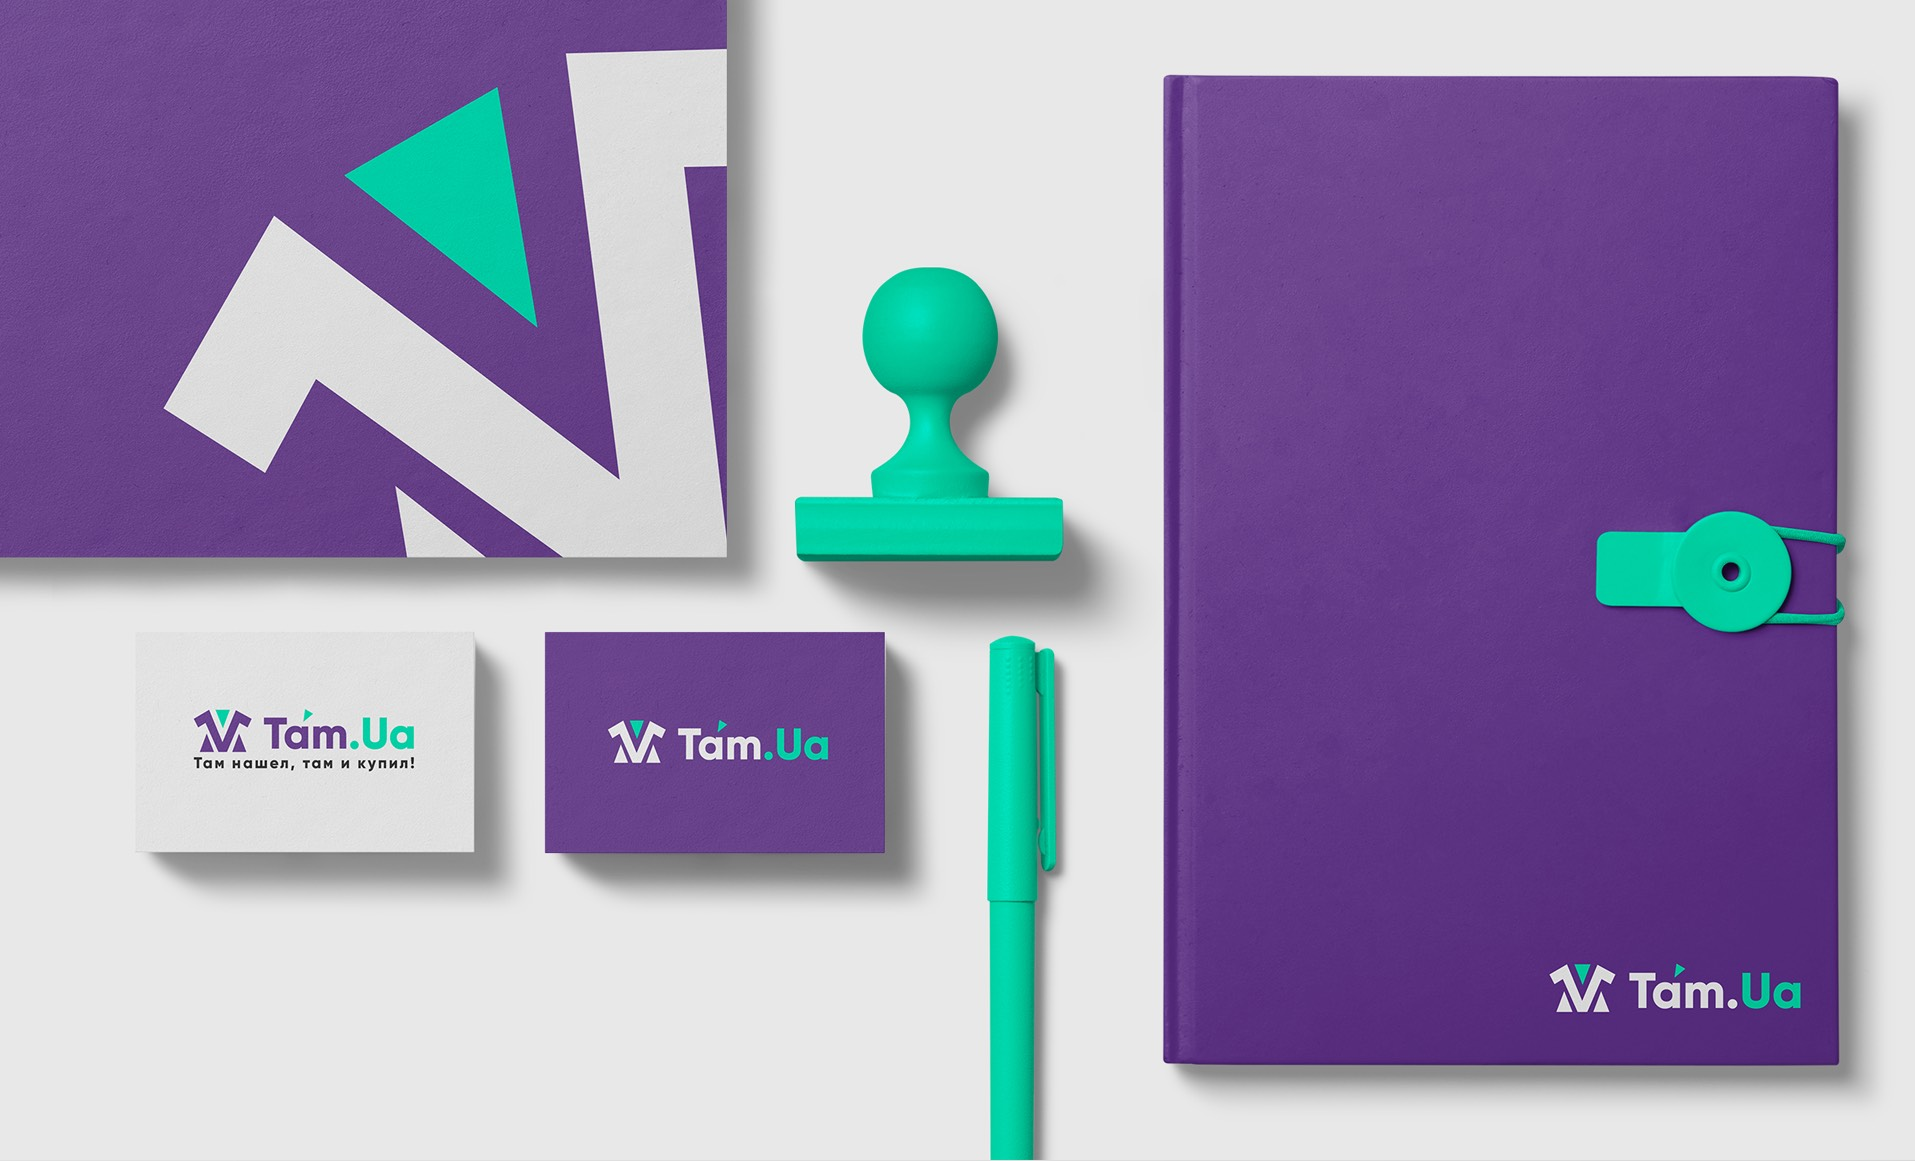 TAM design concept by Deskree Studio